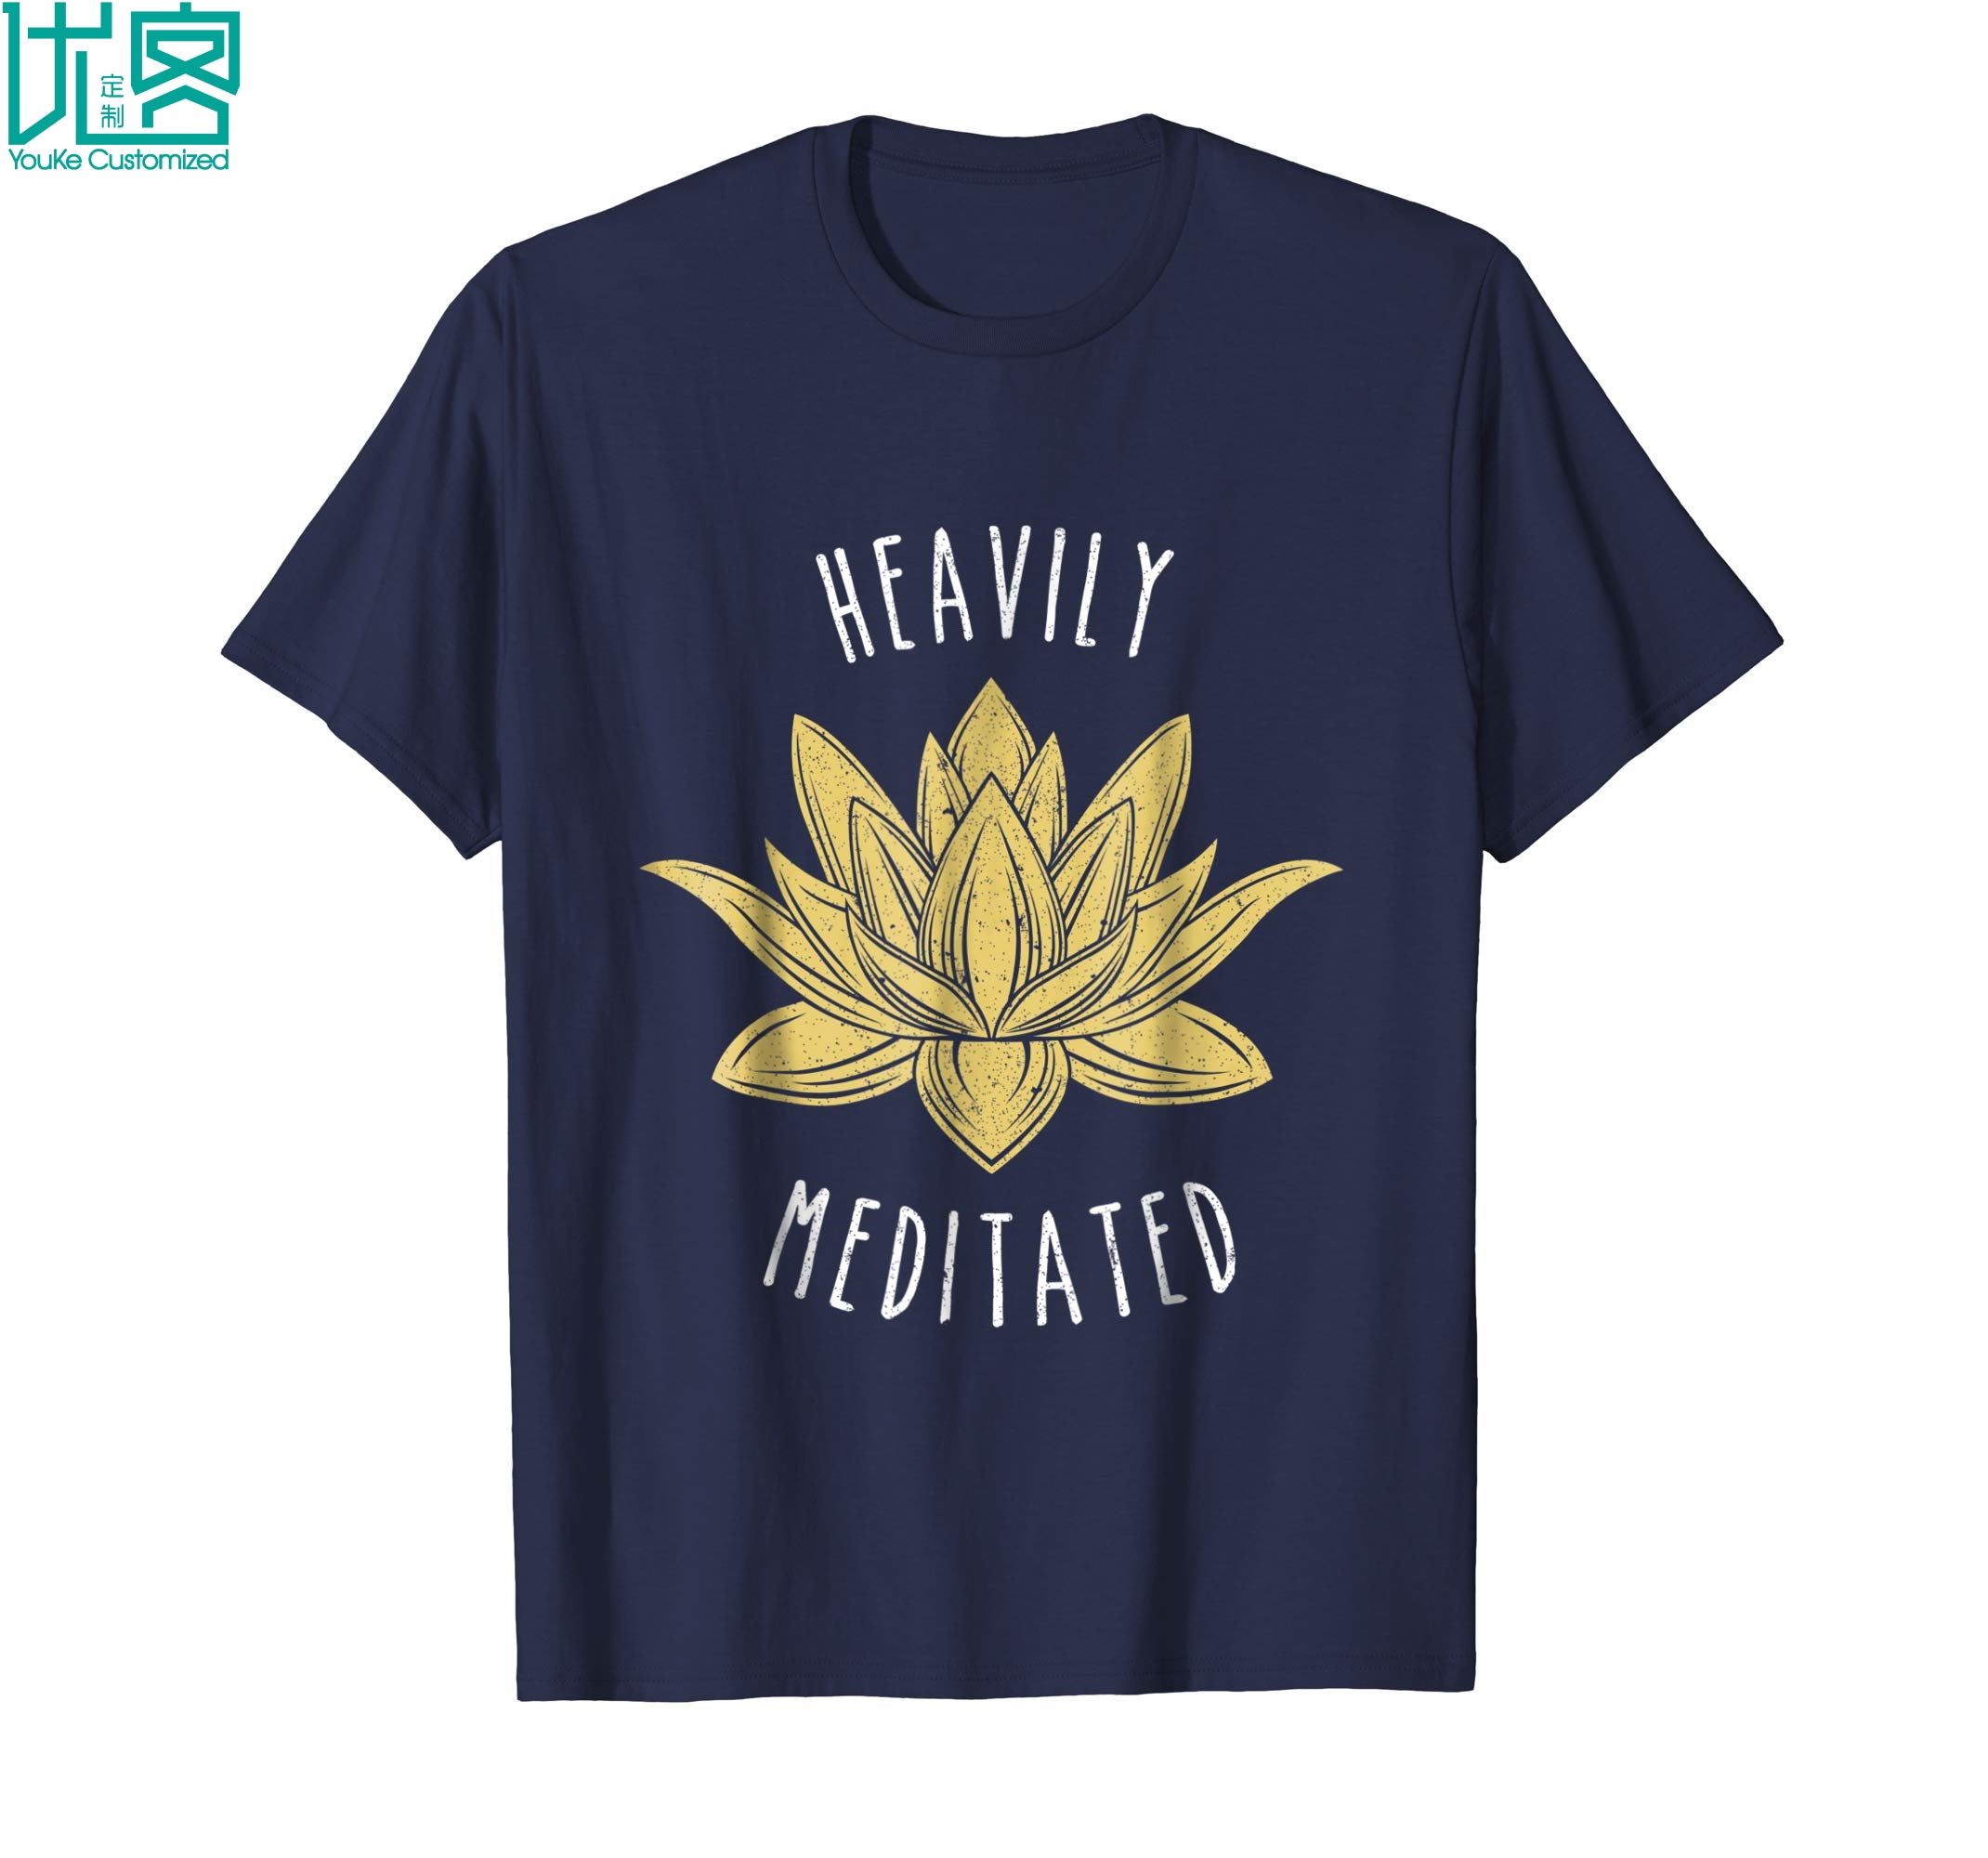 Best Punny Gifts Heavily Meditated Men Women Tee Shirts Amazing Short Sleeve Unique Casual Tees 100% Cotton Clothes T Shirt